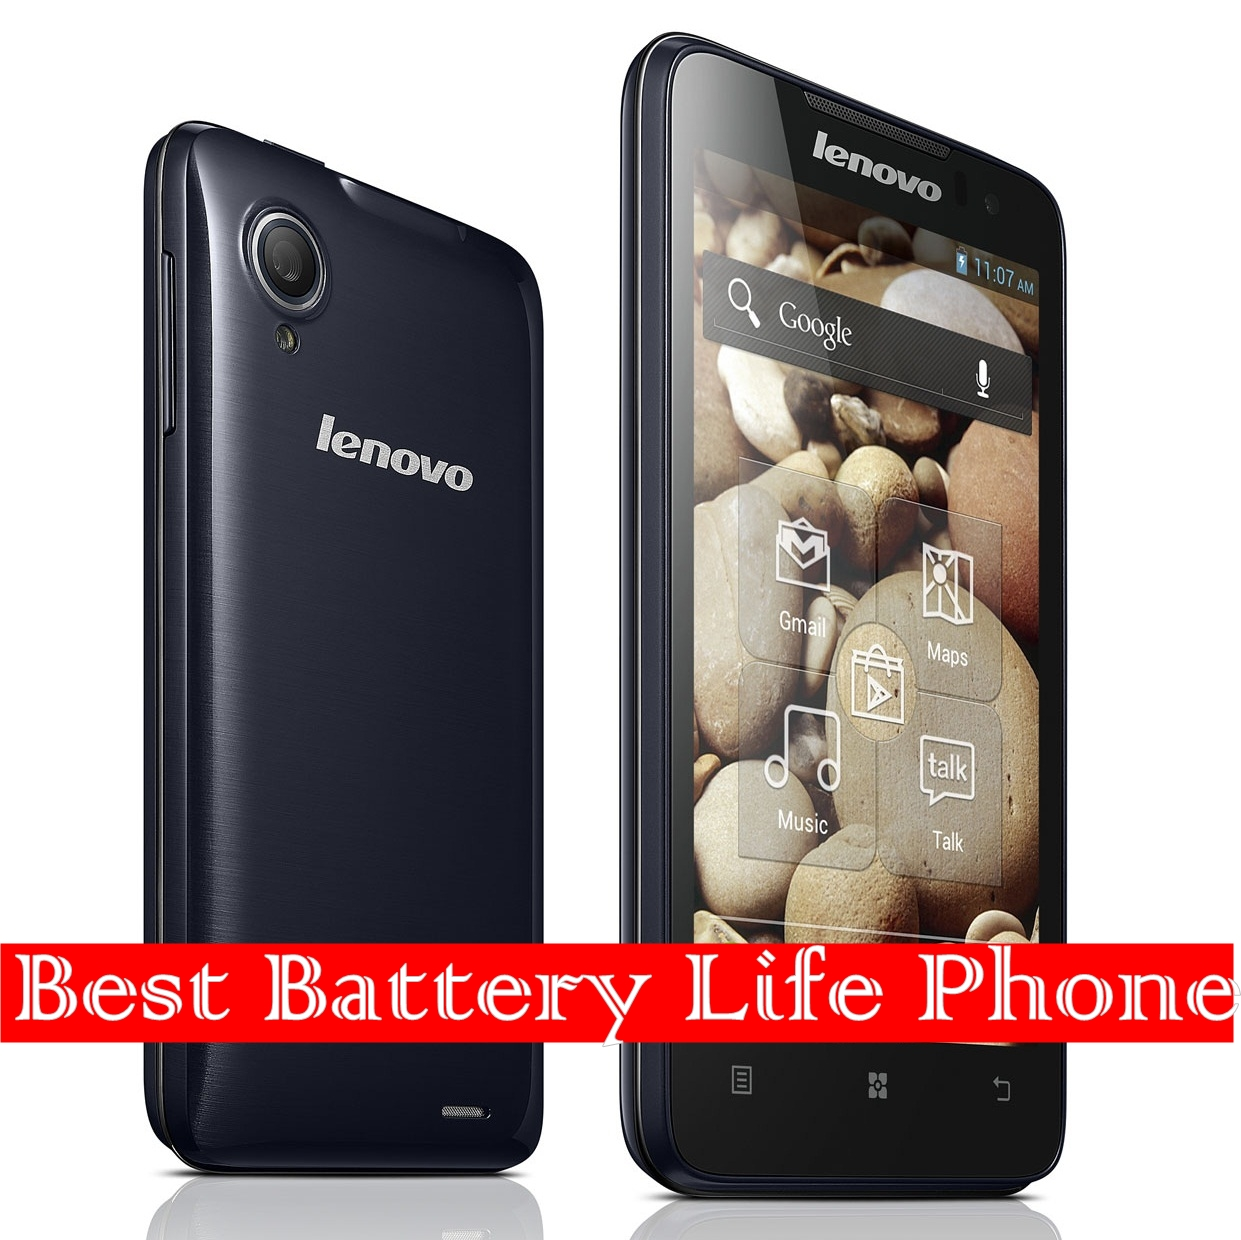 Phone Android Phones With Long Battery Life top 10 phones with best battery life cycle lenovo p770